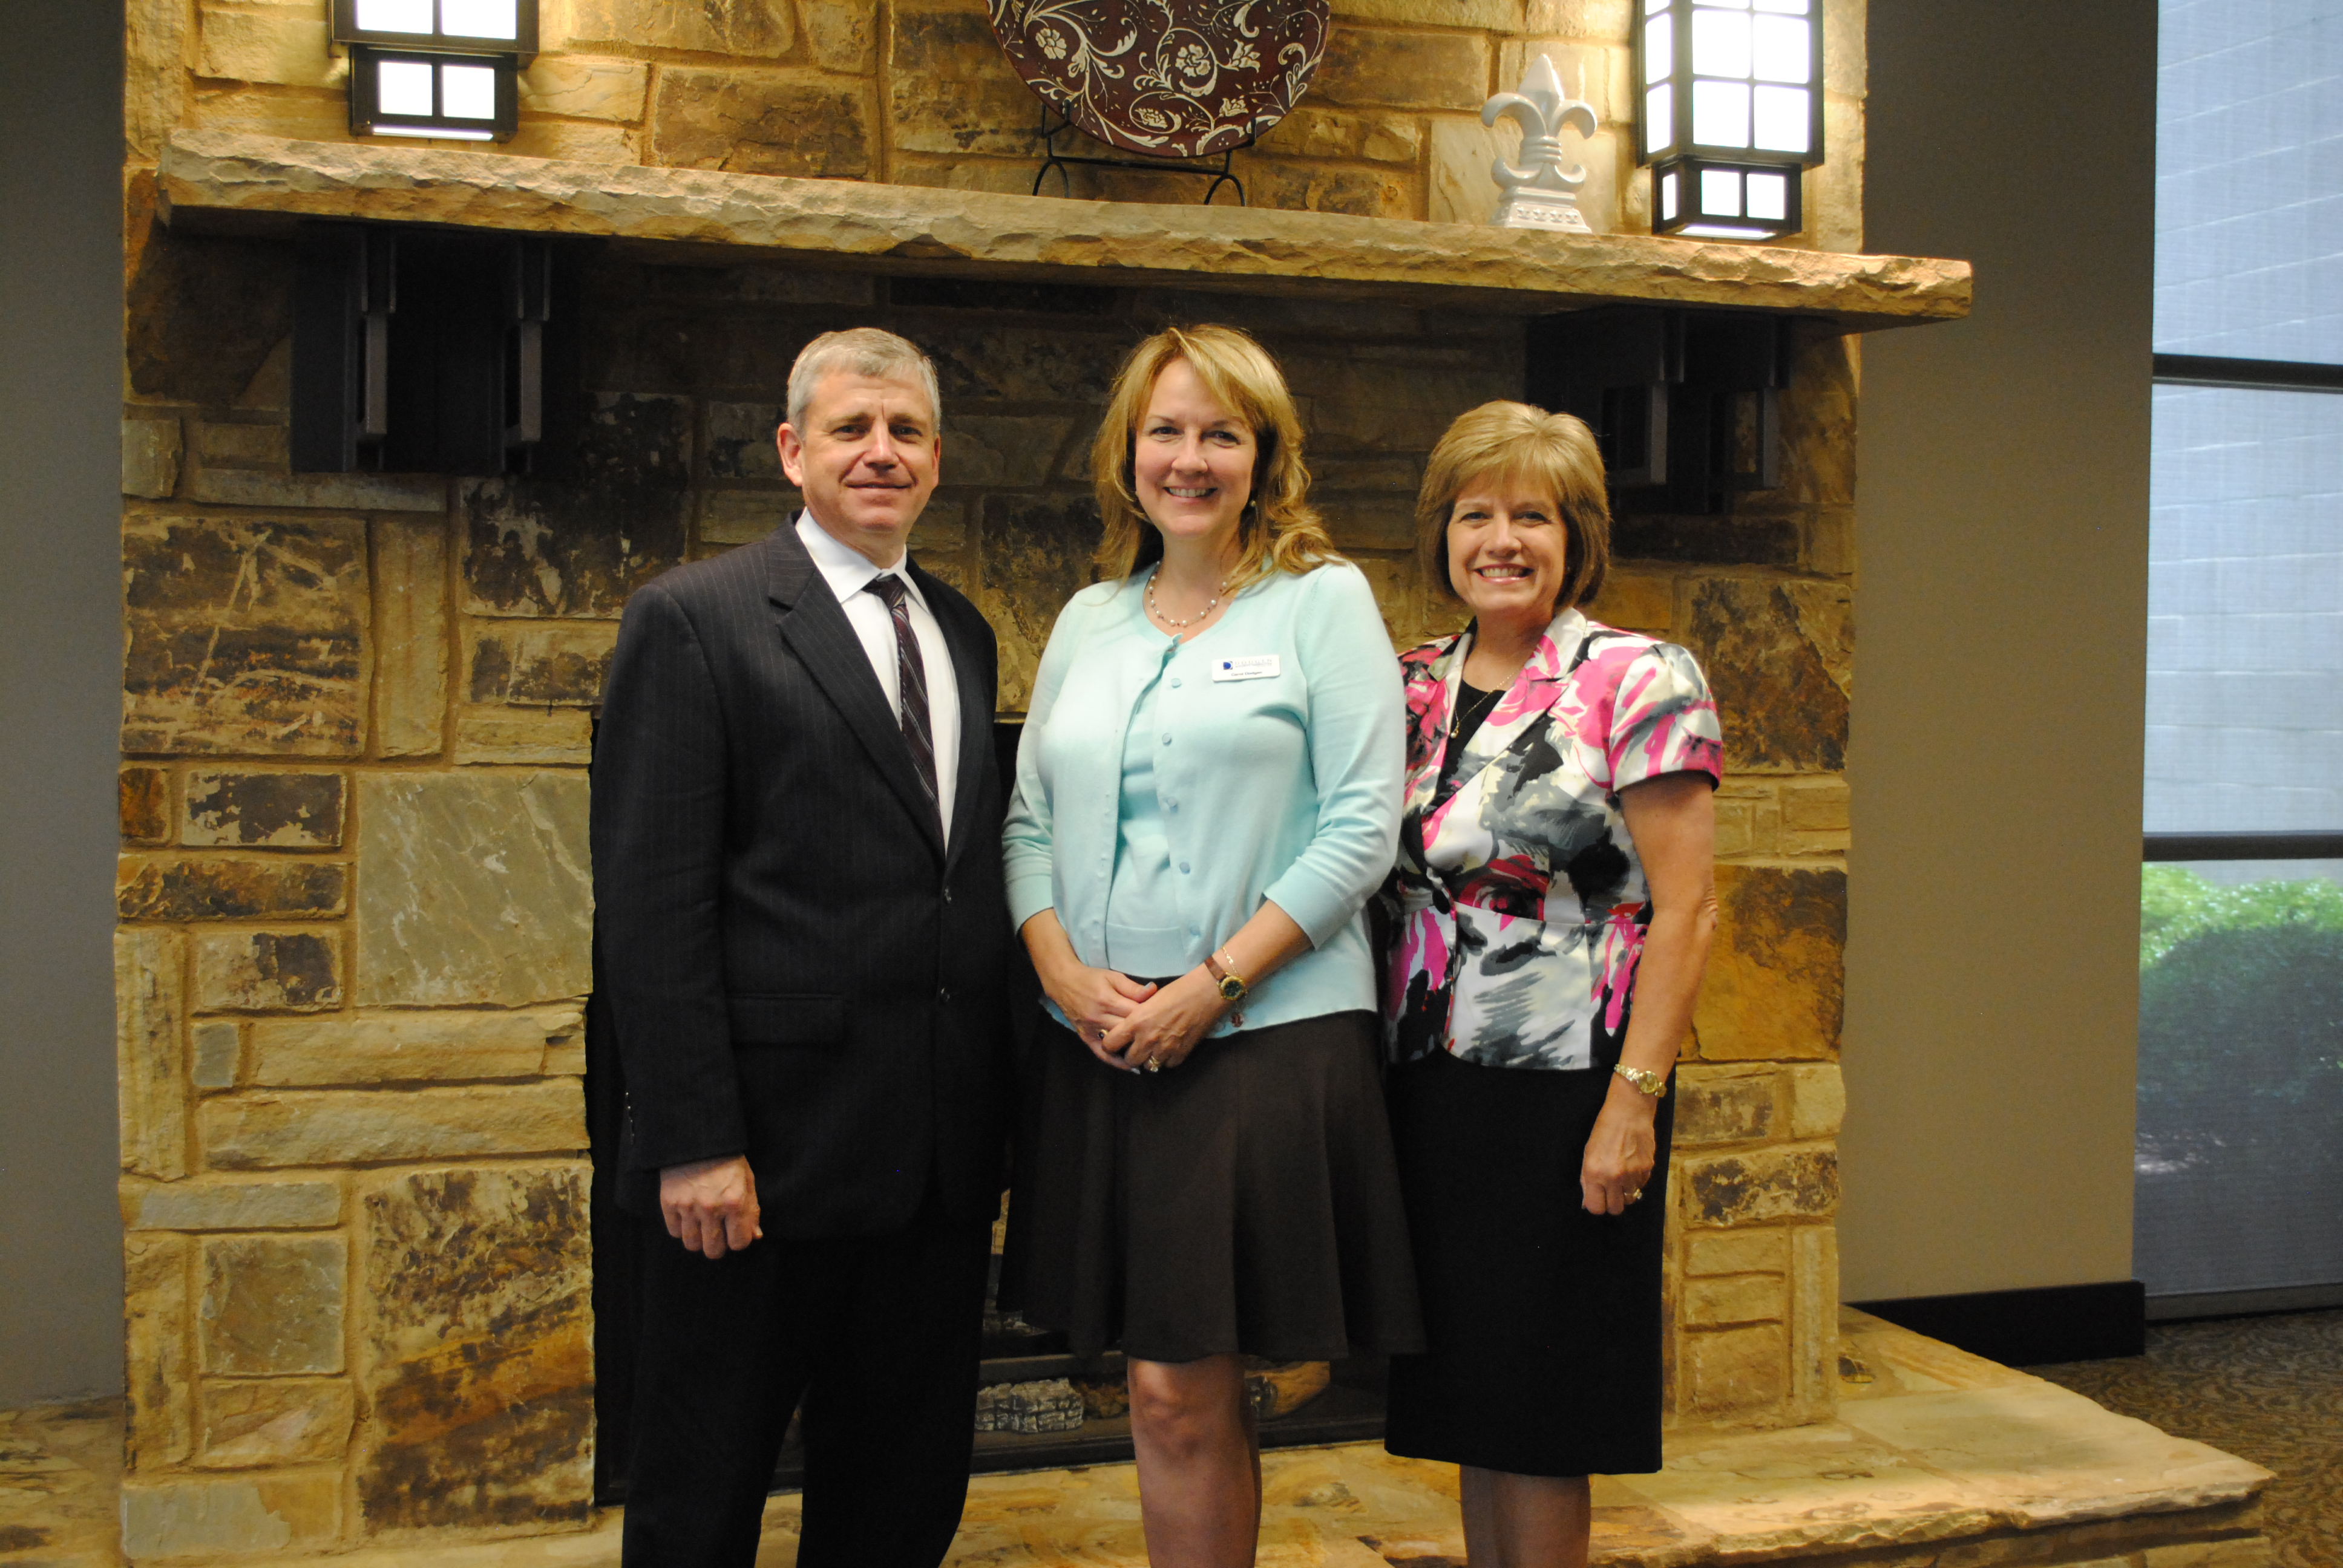 Workplace violence discussed at June Chamber luncheon